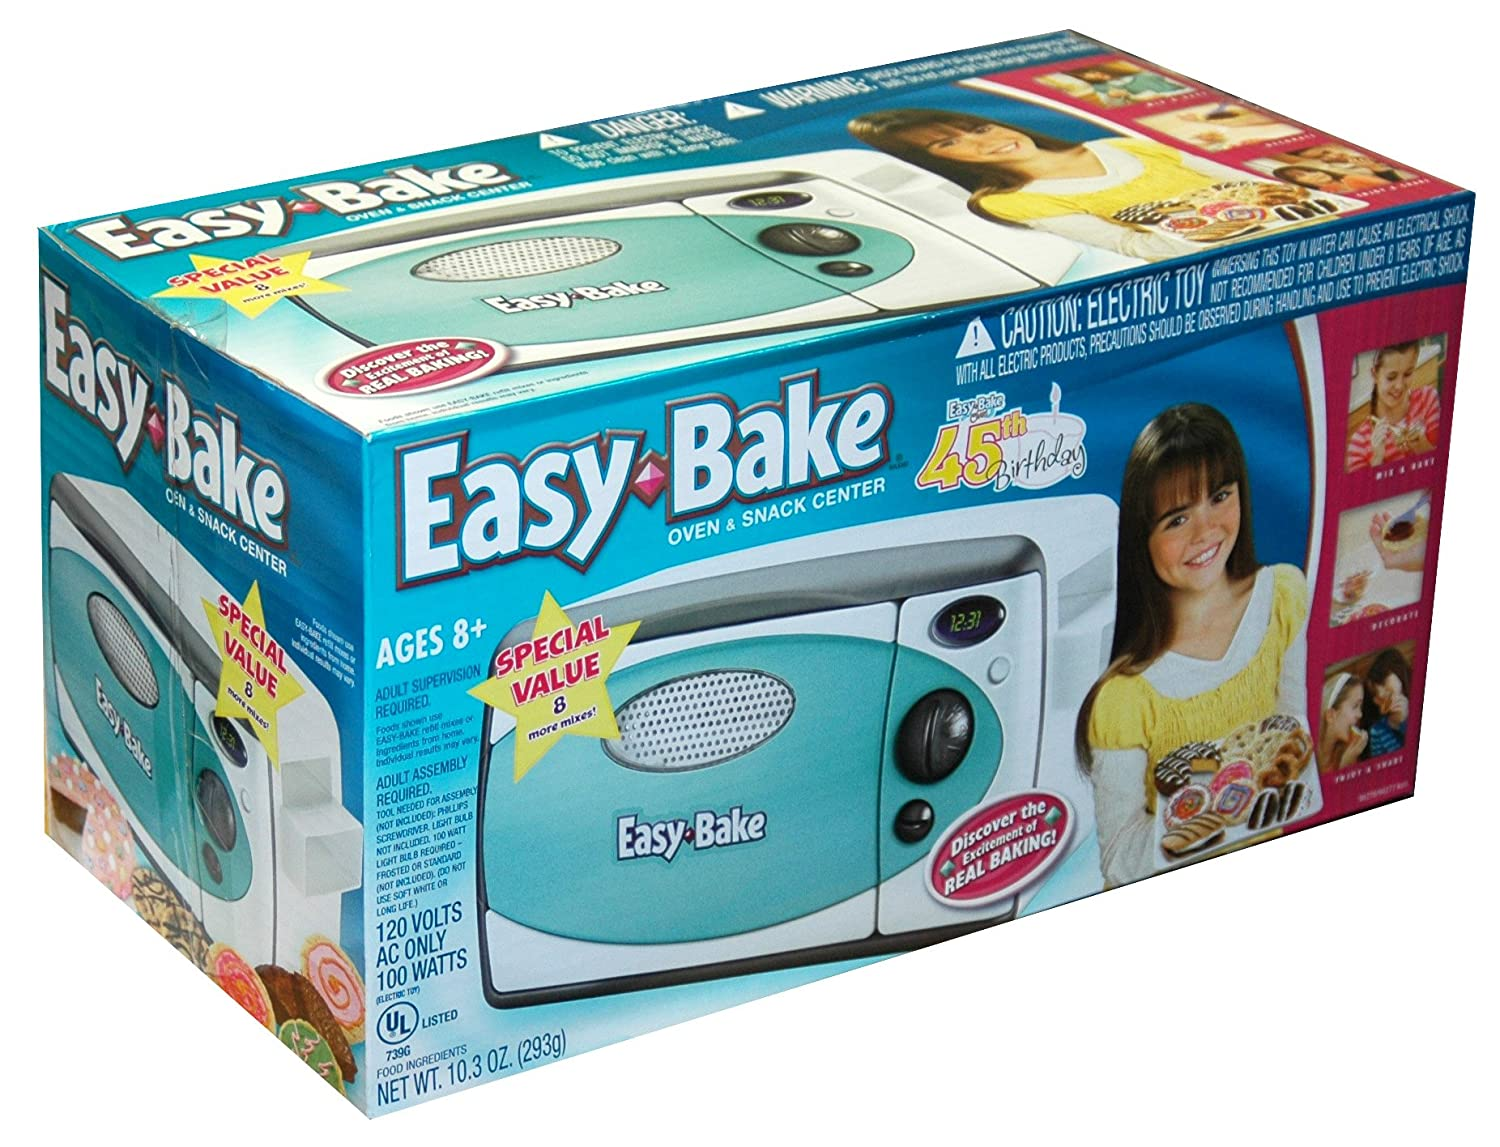 Easy Bake Oven & Snack Center, Includes 11 Mixes, 2 Baking Pans and Utensils